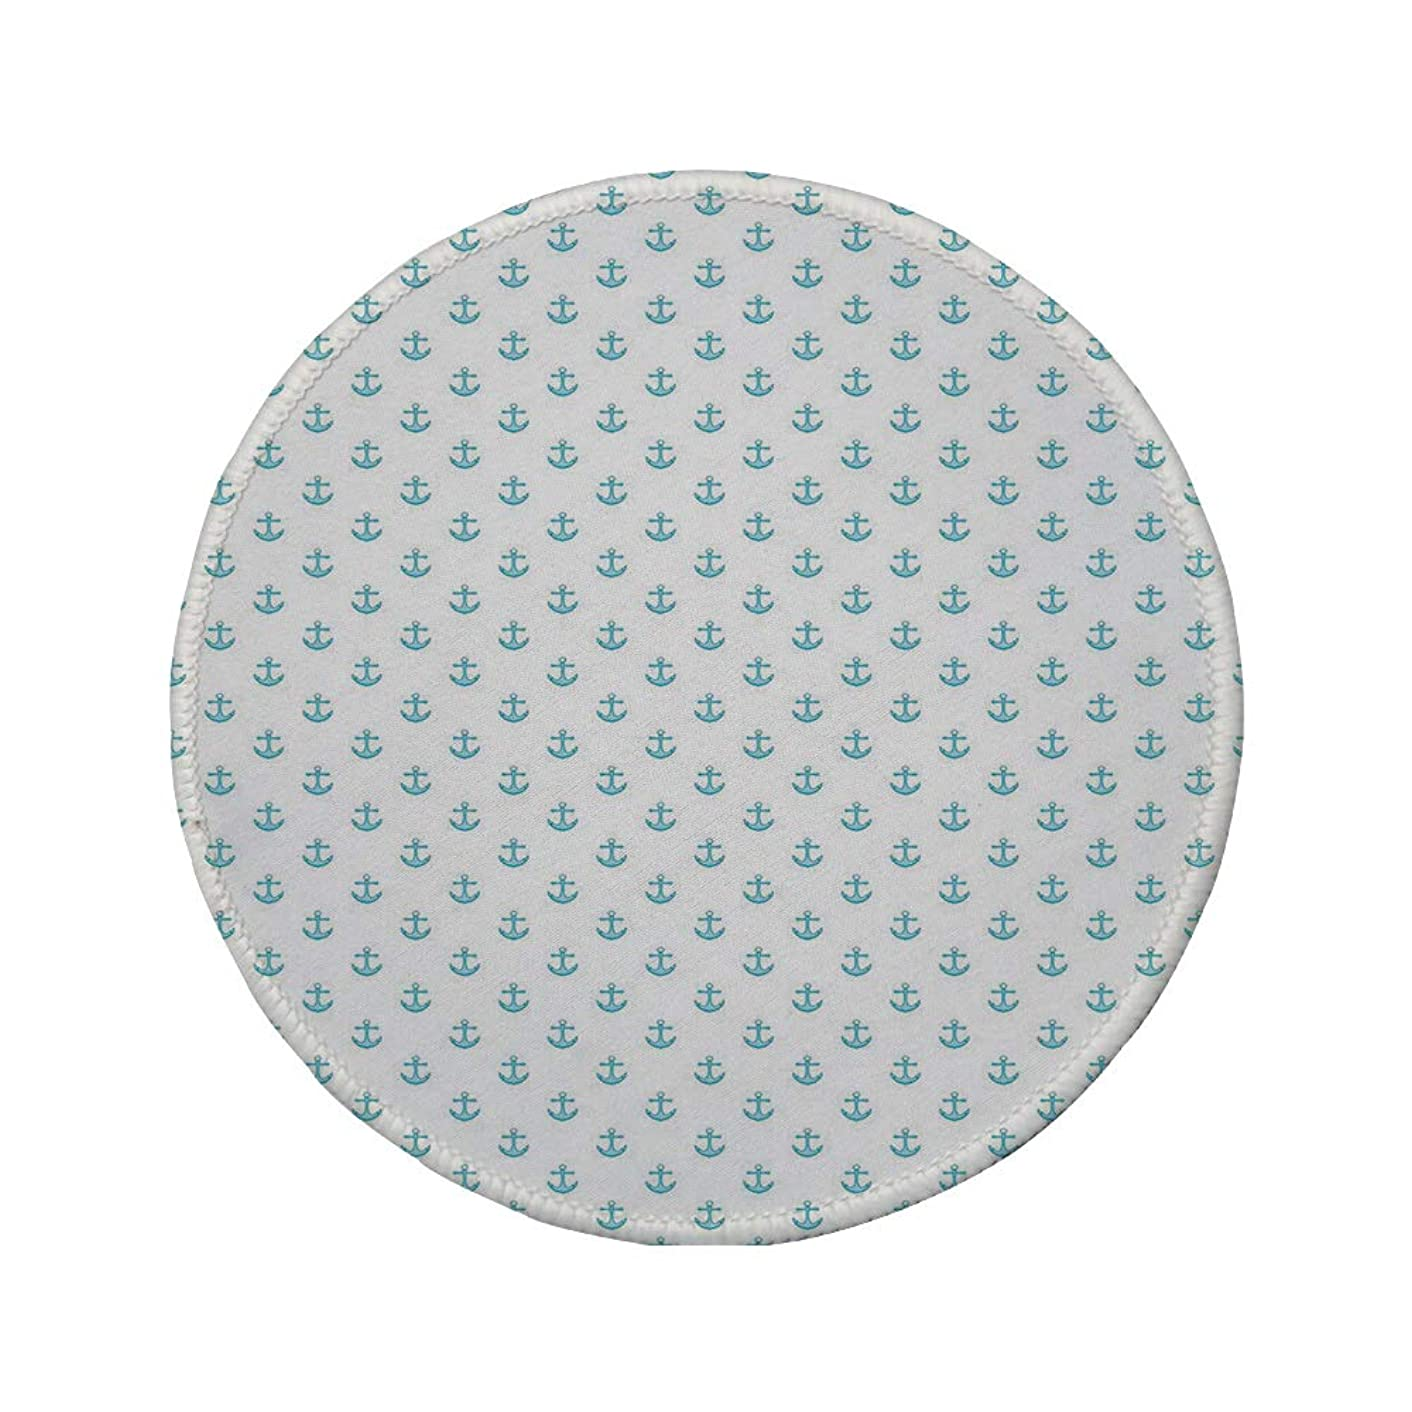 Non-Slip Rubber Round Mouse Pad,Anchor,Blue Small Vivid Icons Pattern Cartoon Style Transportation Vessel Oceanic Life Decorative,Sky Blue White,7.87